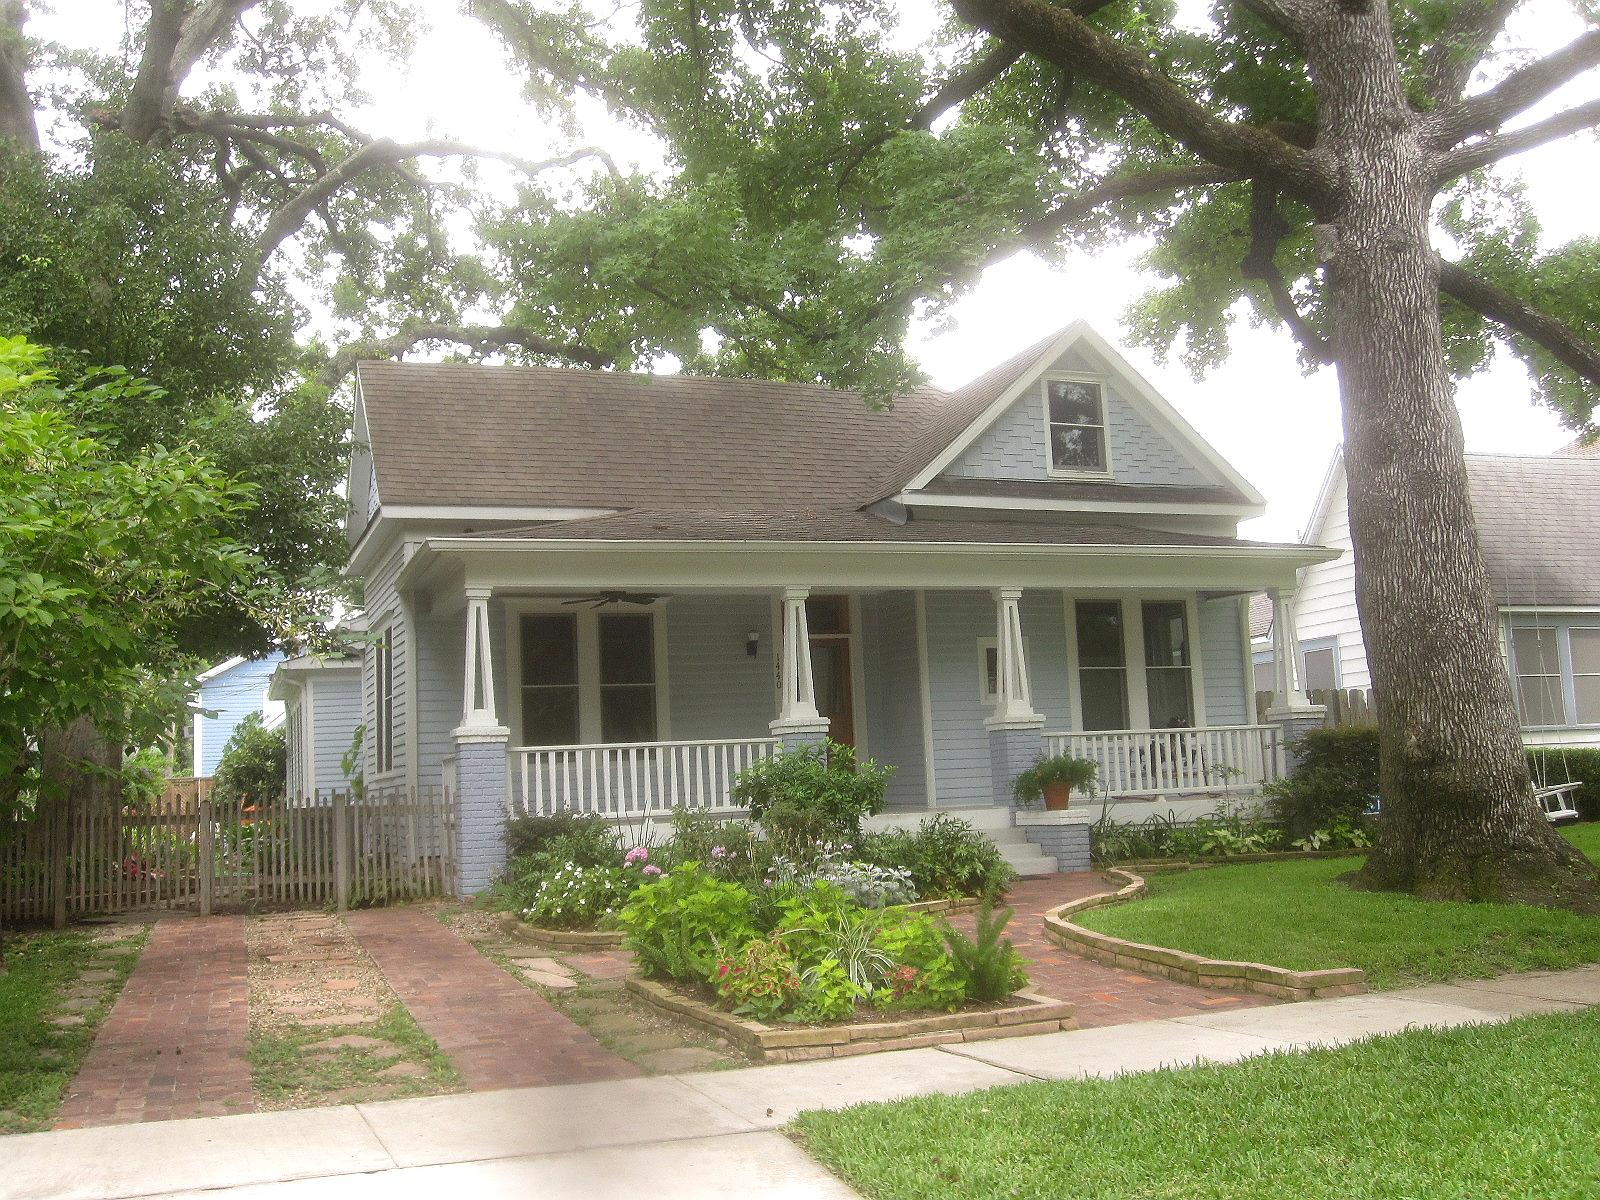 The other houston bungalow front yard garden ideas for Cottage architecture